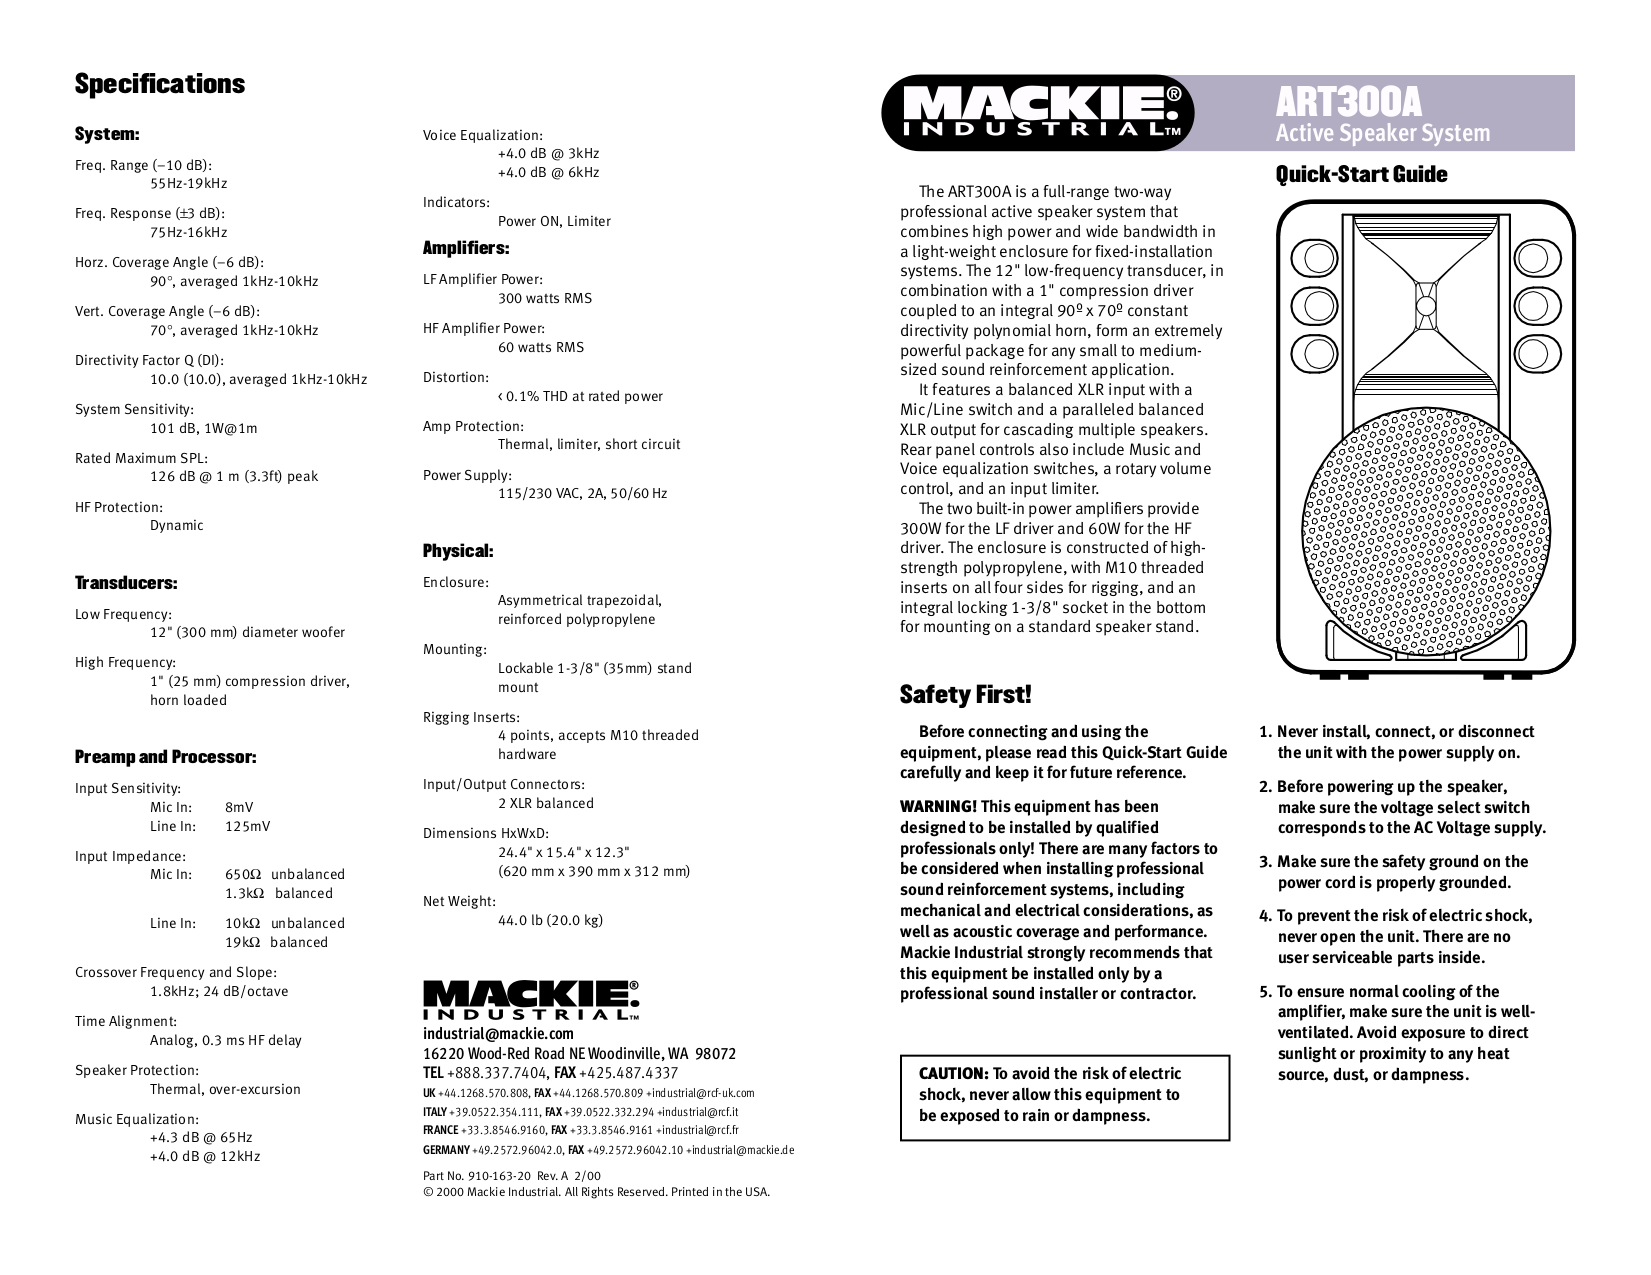 pdf for Mackie Speaker System Art Series ART300A manual